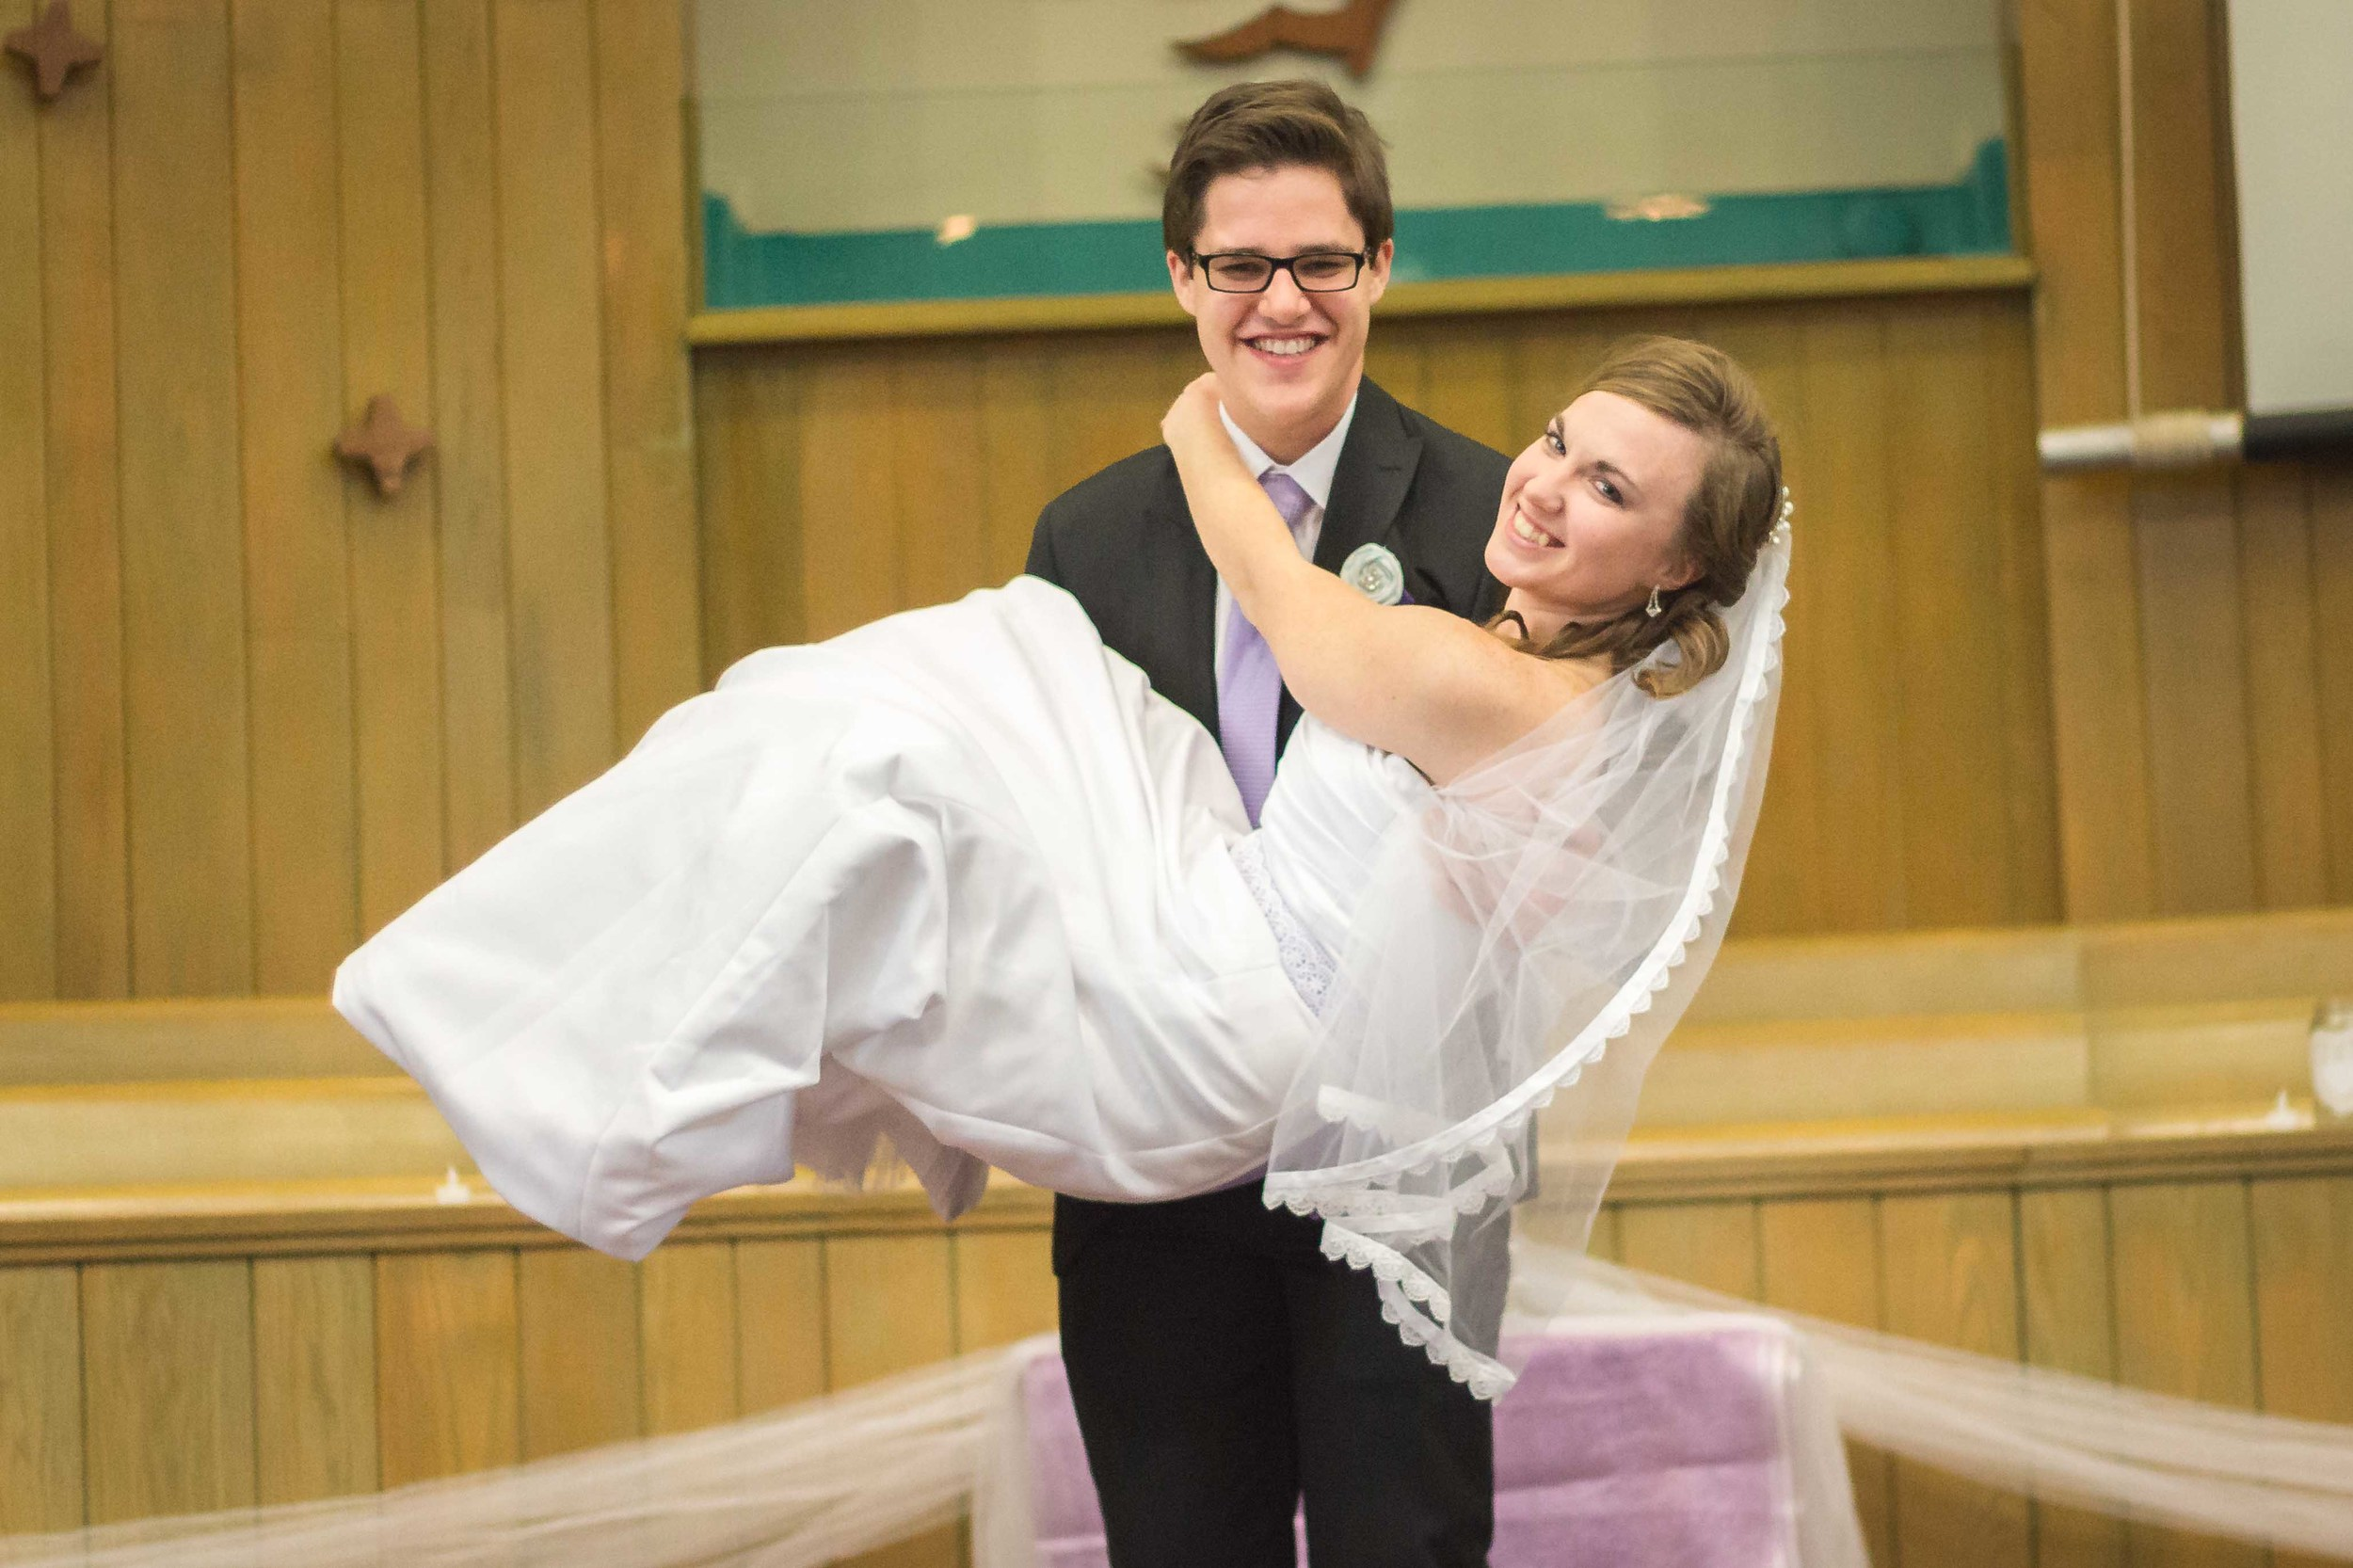 Carrying the Bride-249.jpg